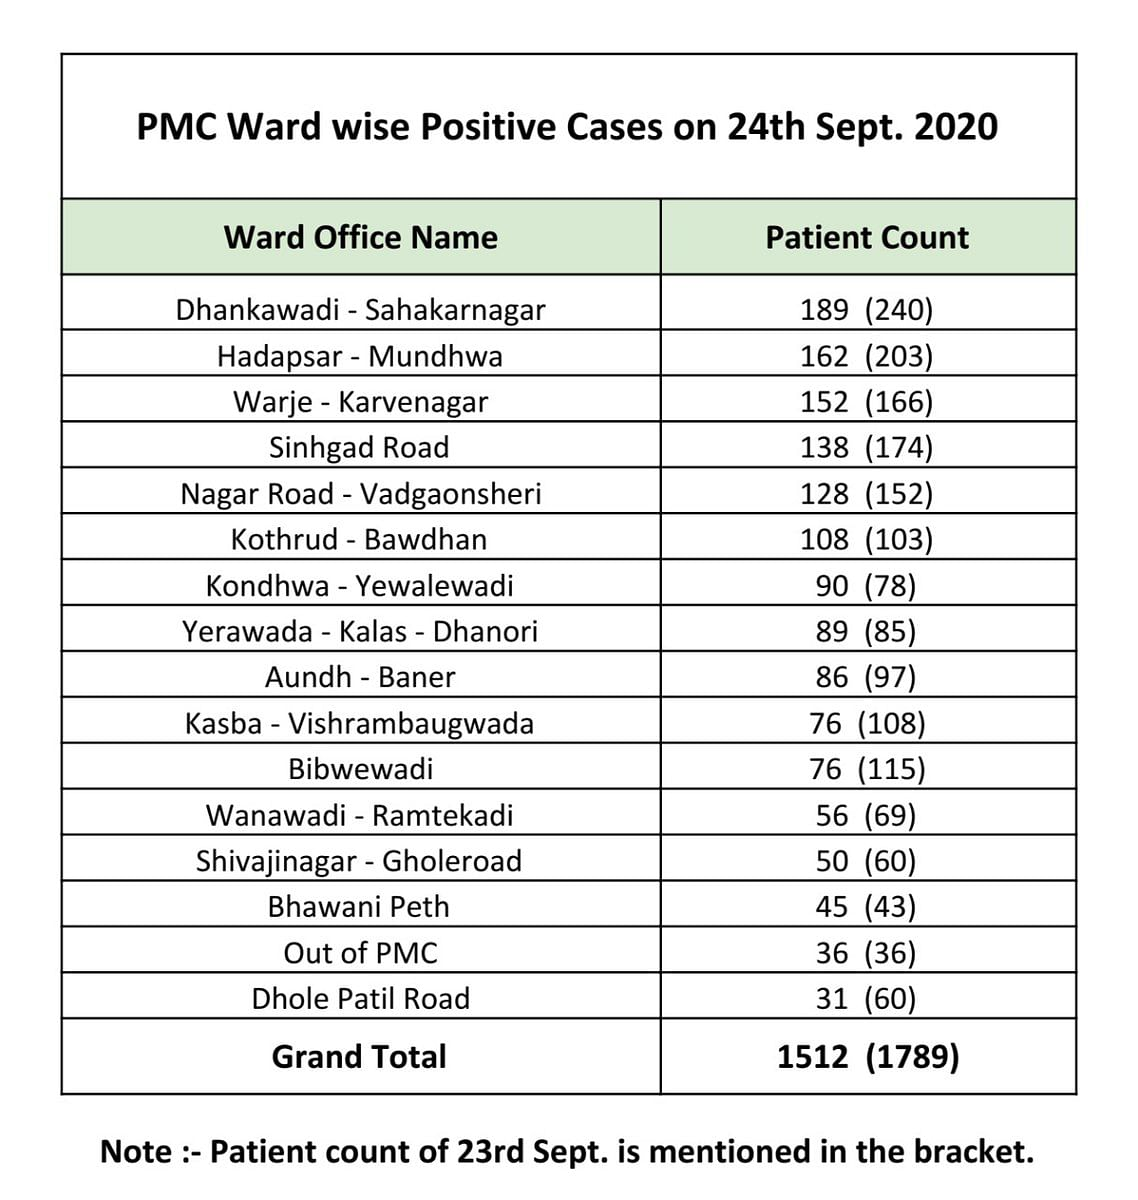 The ward wise breakdown of COVID-19 cases issued by PMC on September 25